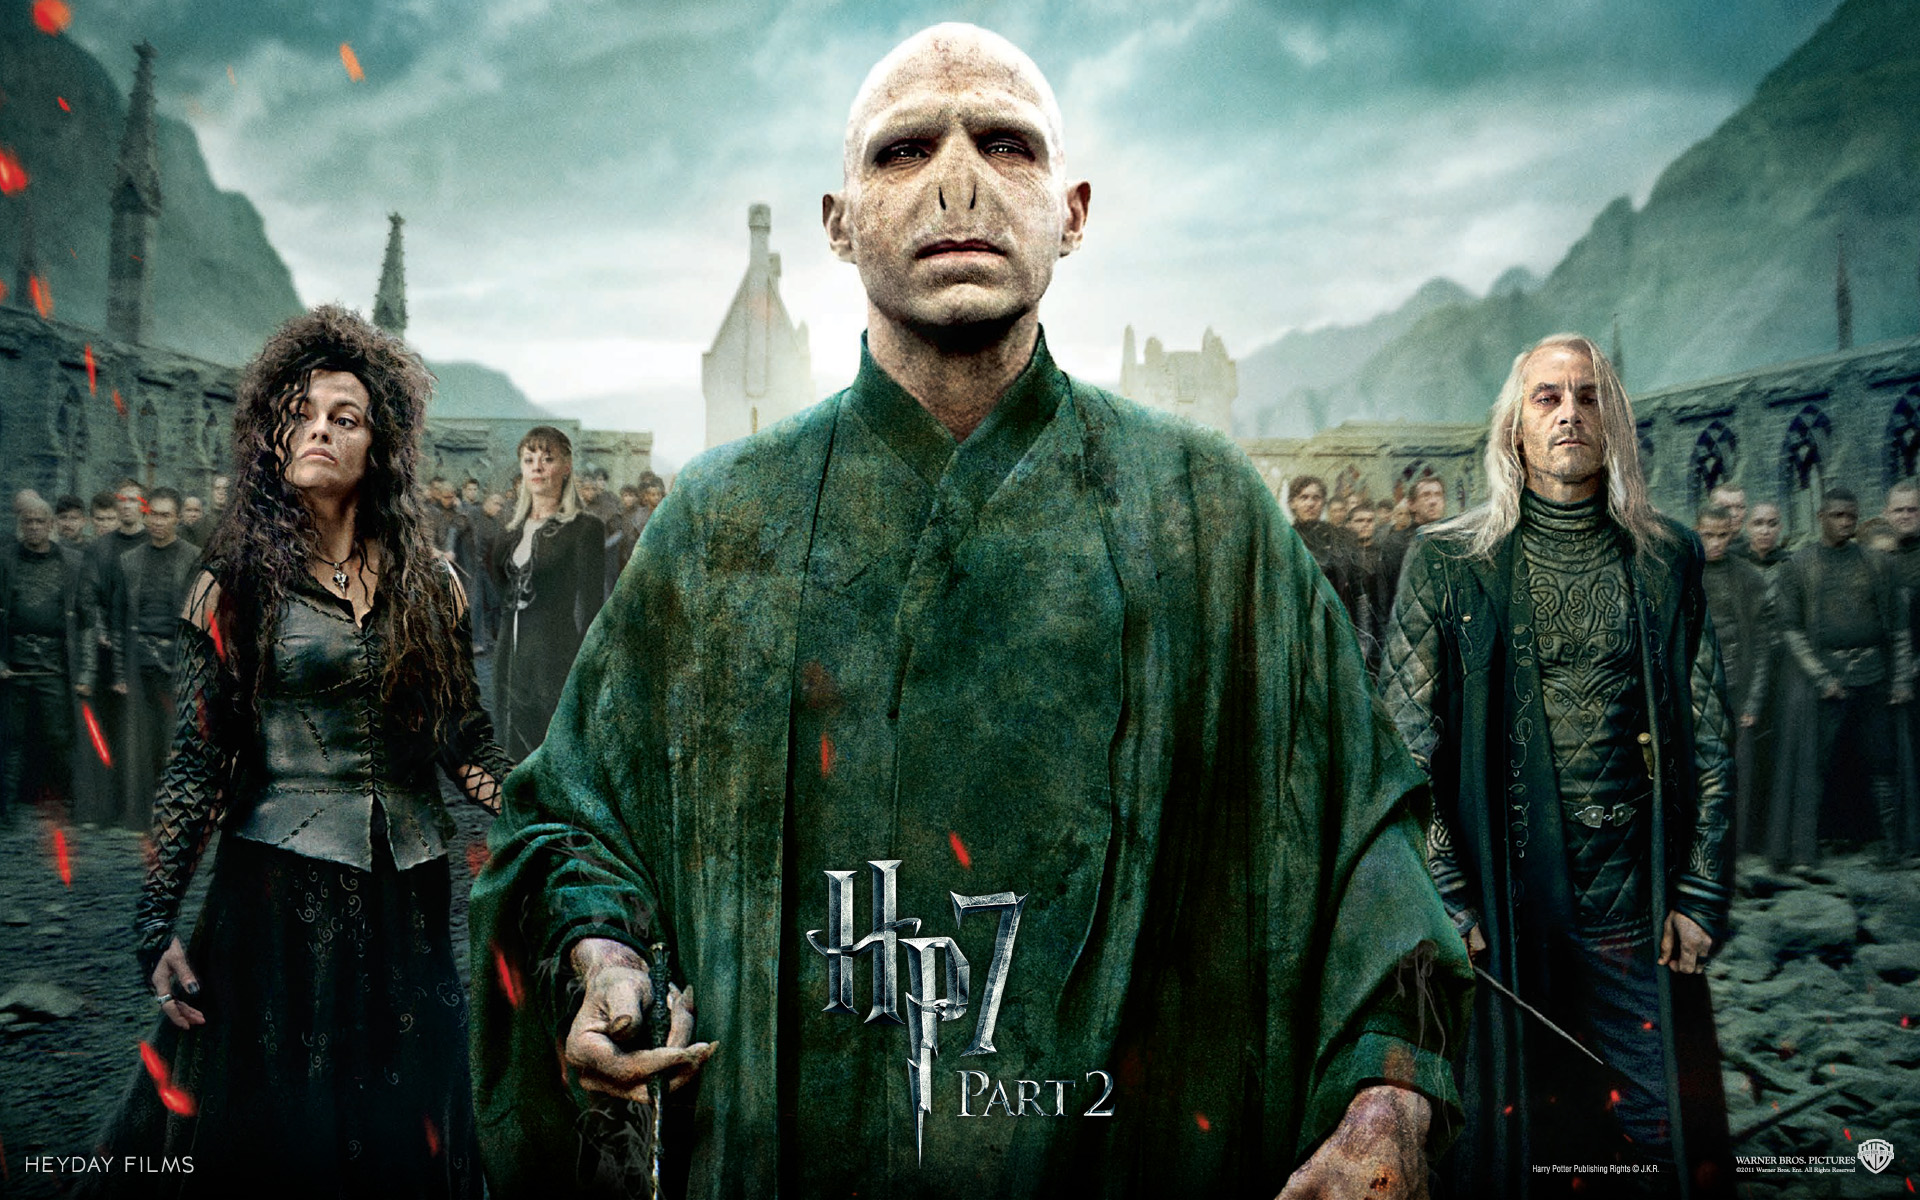 Harry Potter and the Deathly Hallows Wallpaper Villain